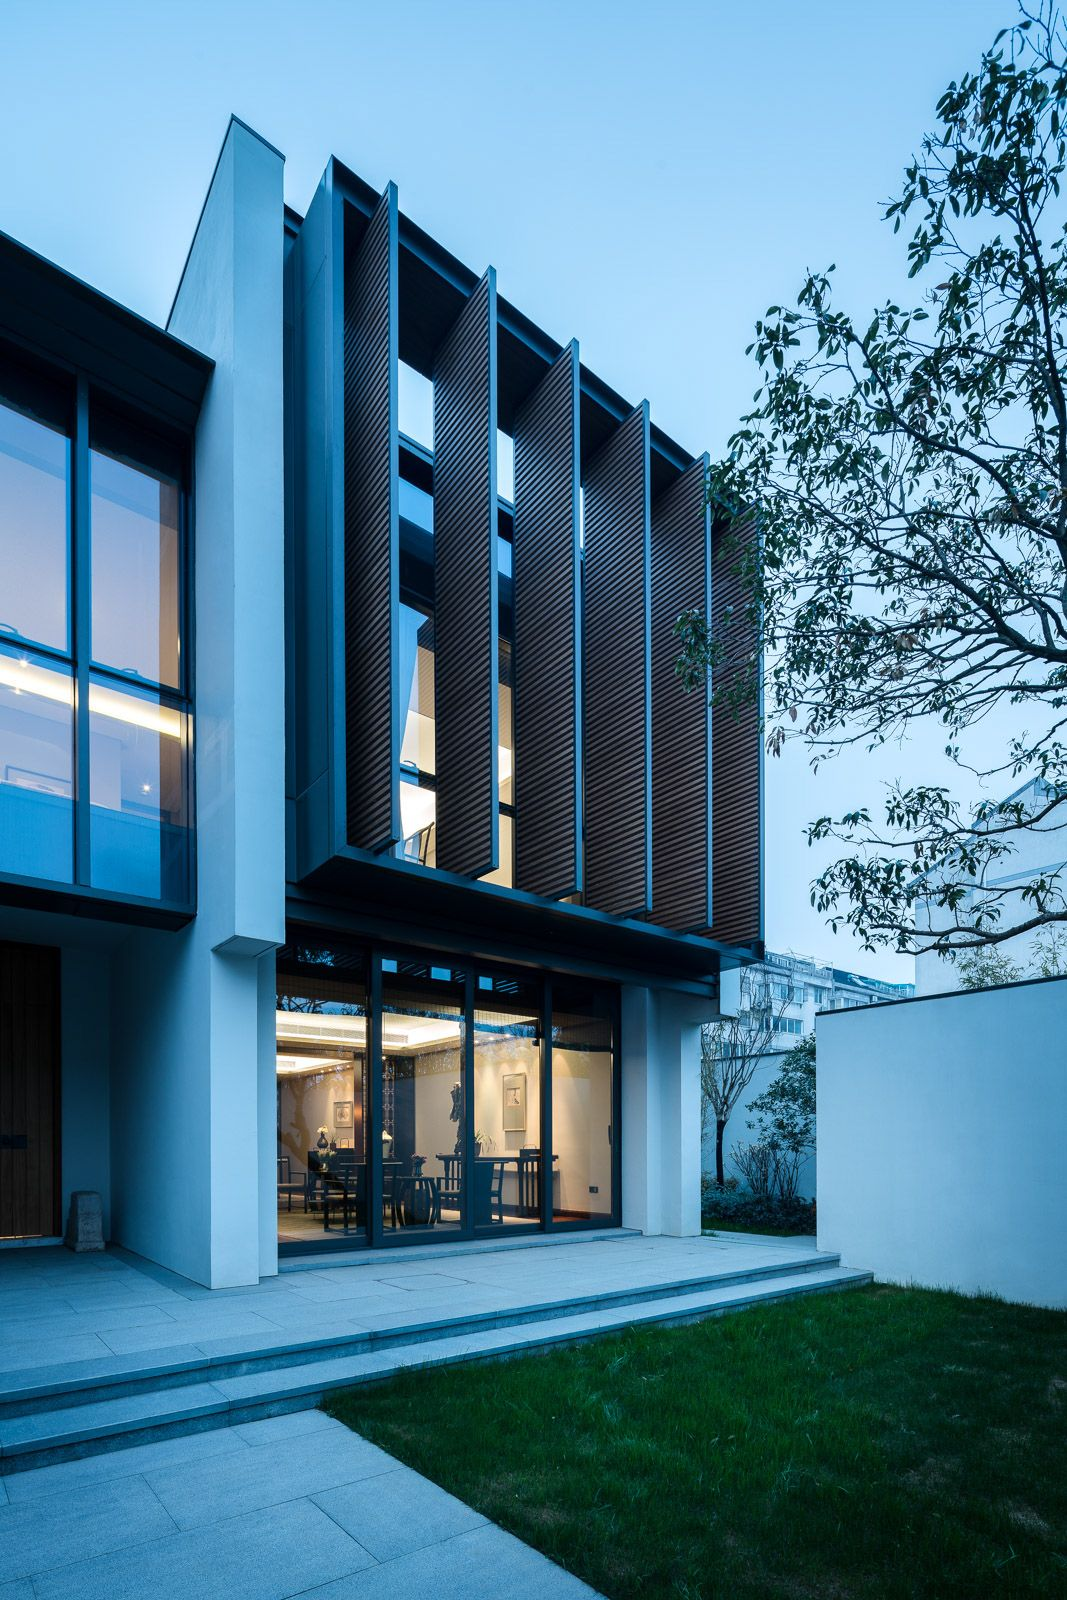 Seth powers jinghope villas in suzhou designed by for Architecture firms in singapore